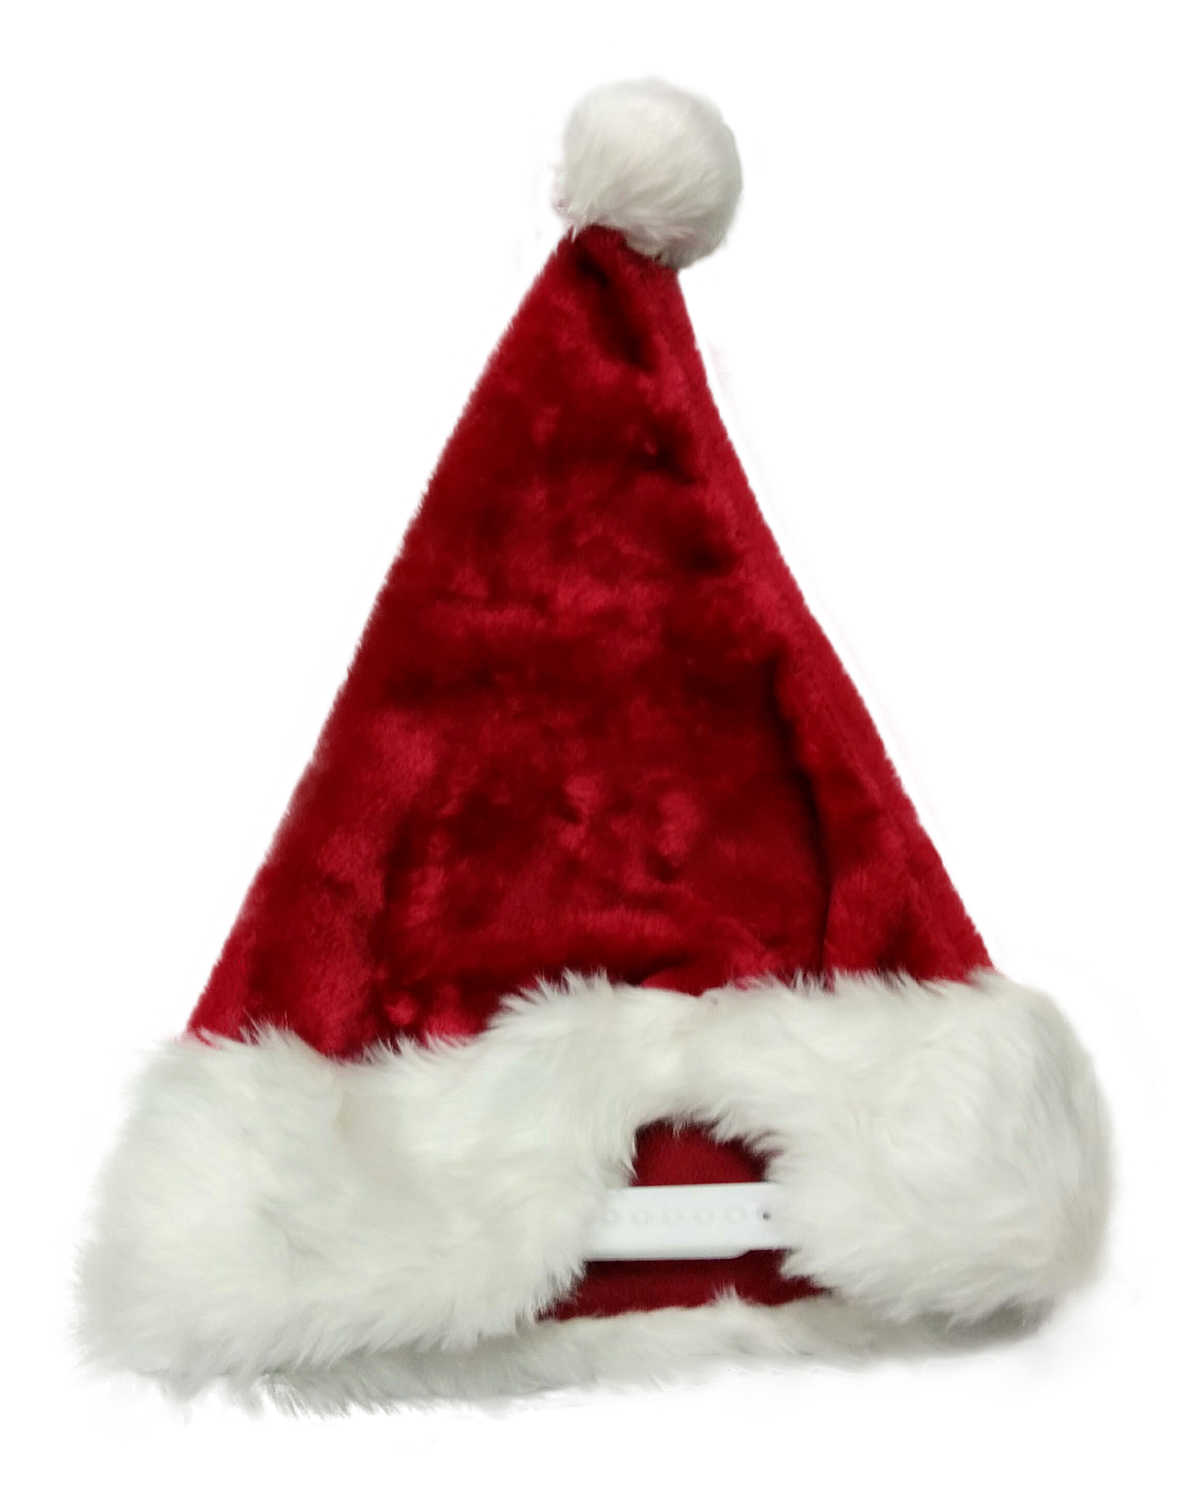 Santa Hat Snapback With Faux Fur Trim Border and Puffy Ball Red Dark ... 5b6abda4cfb